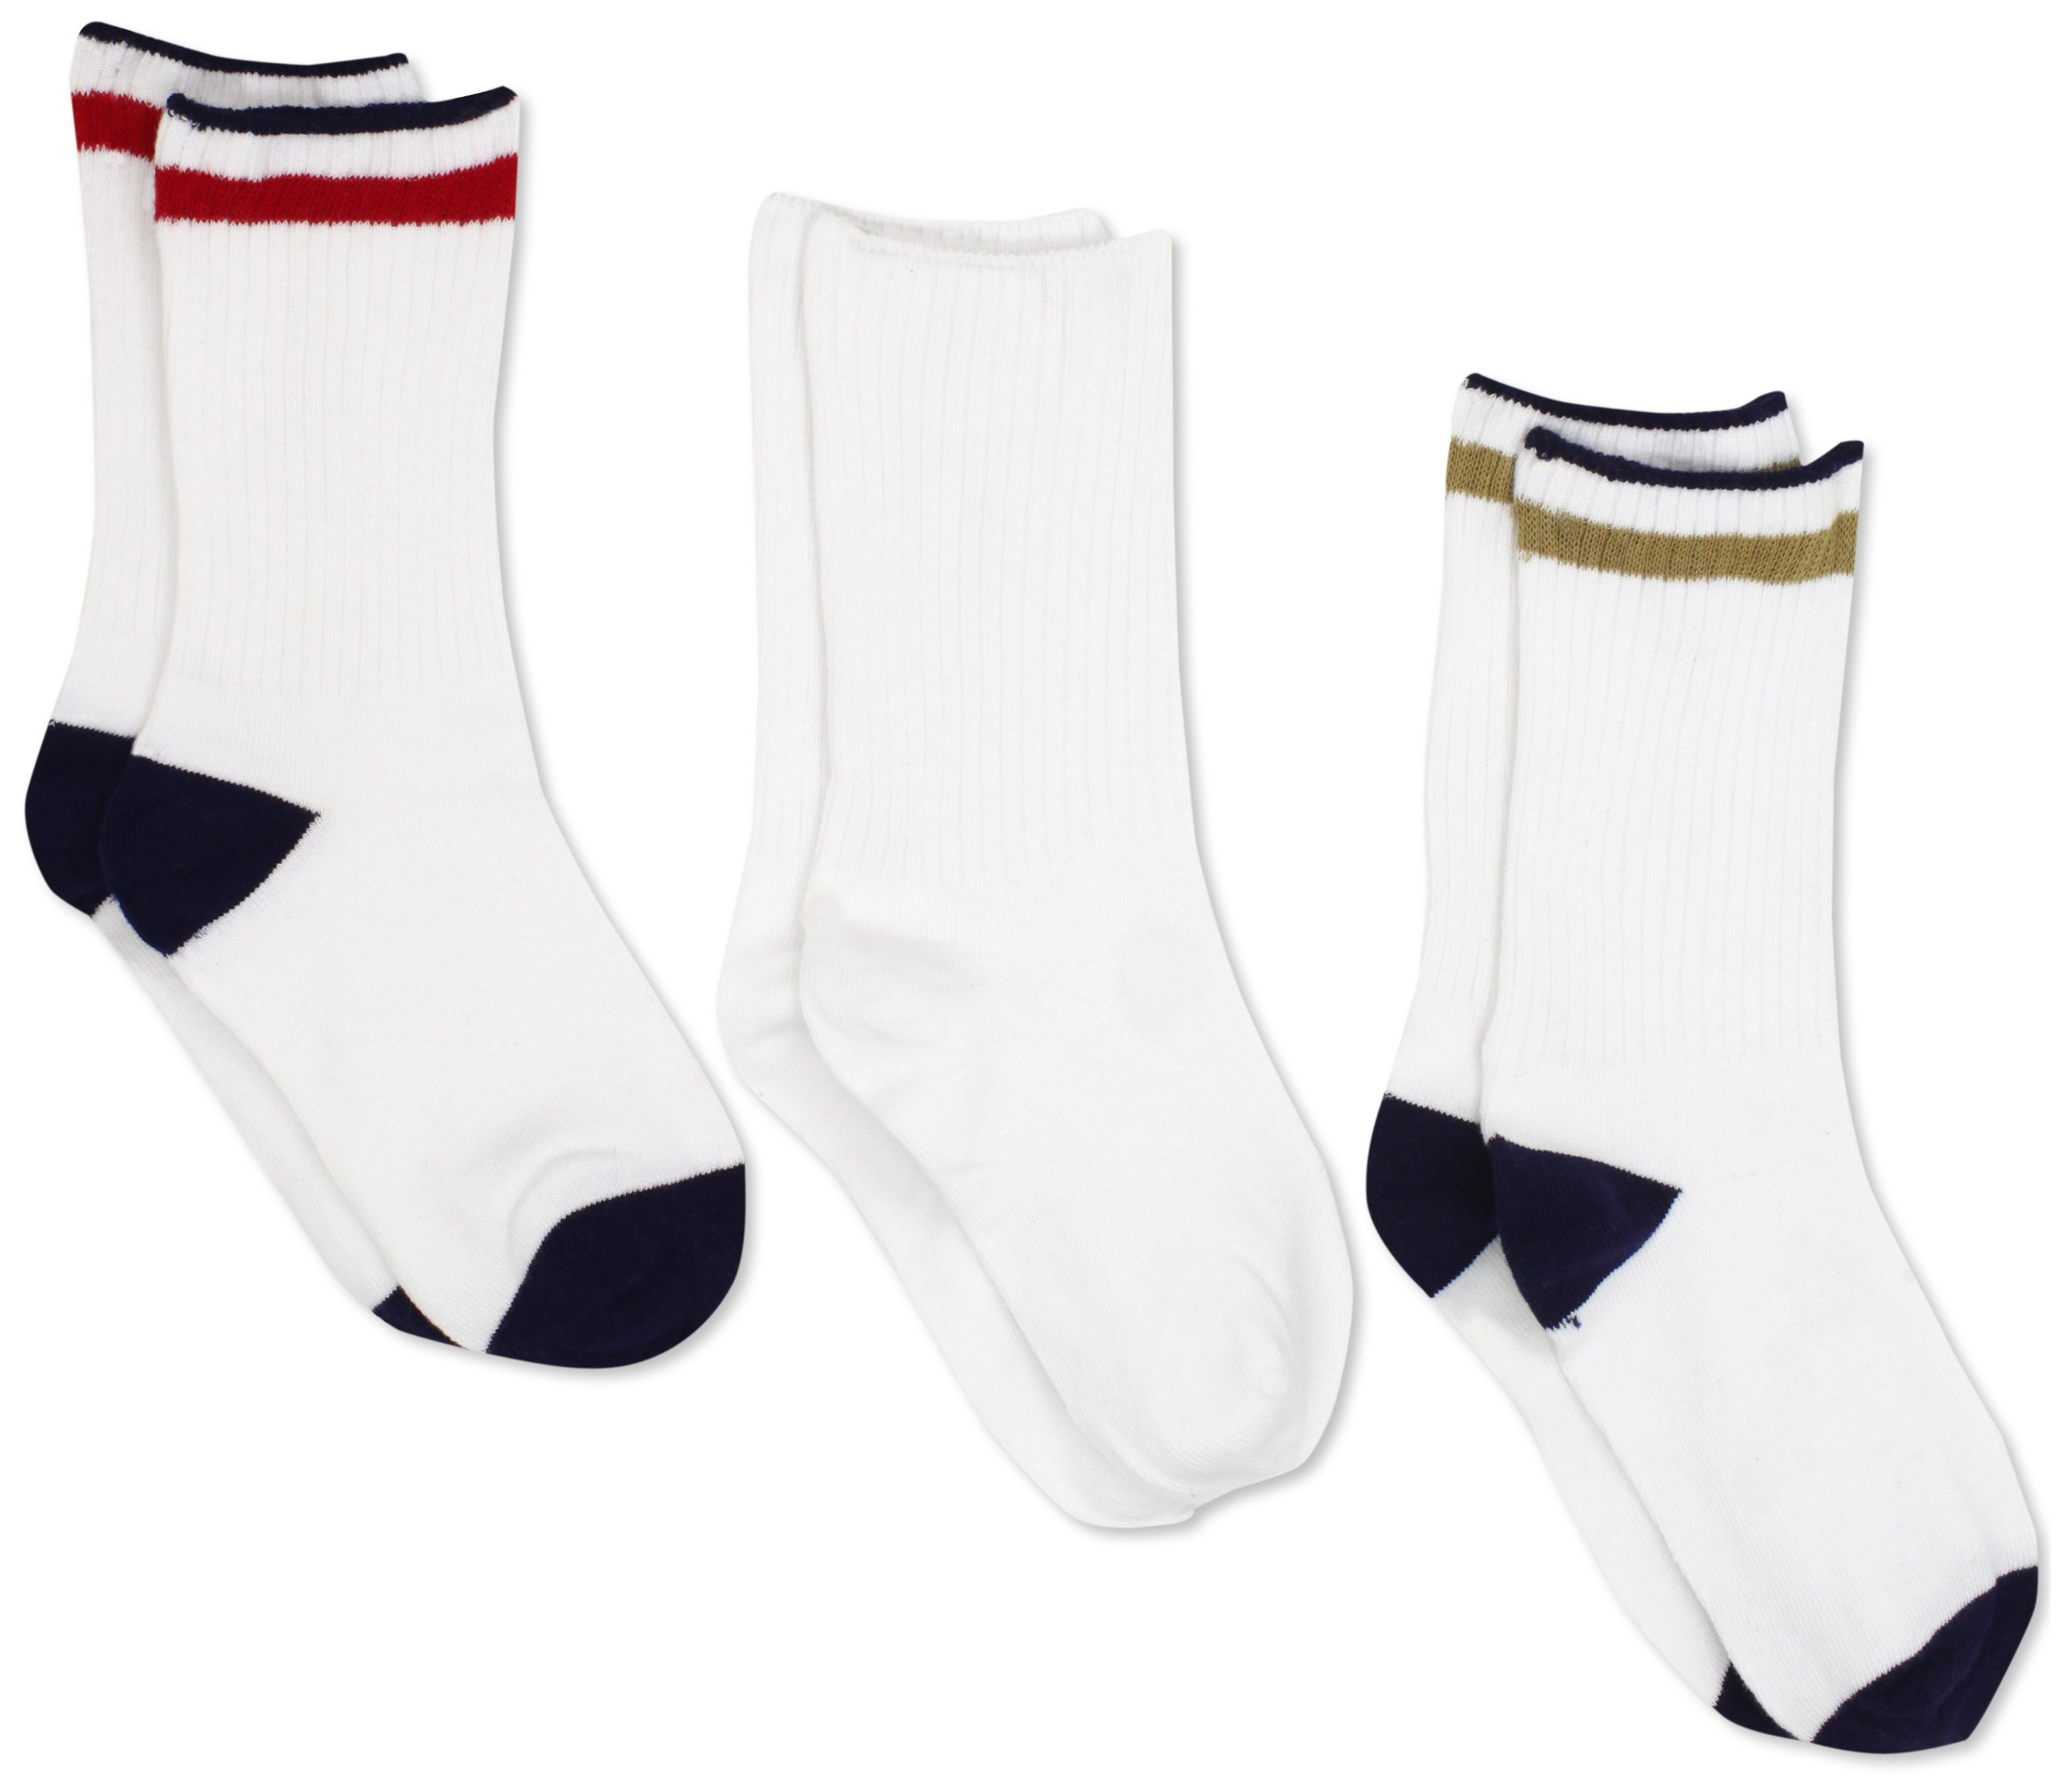 Jefferies Socks Little Boys' 6-11 Seamless Casual Crew (Pack of 3), Assorted/A, X-Small